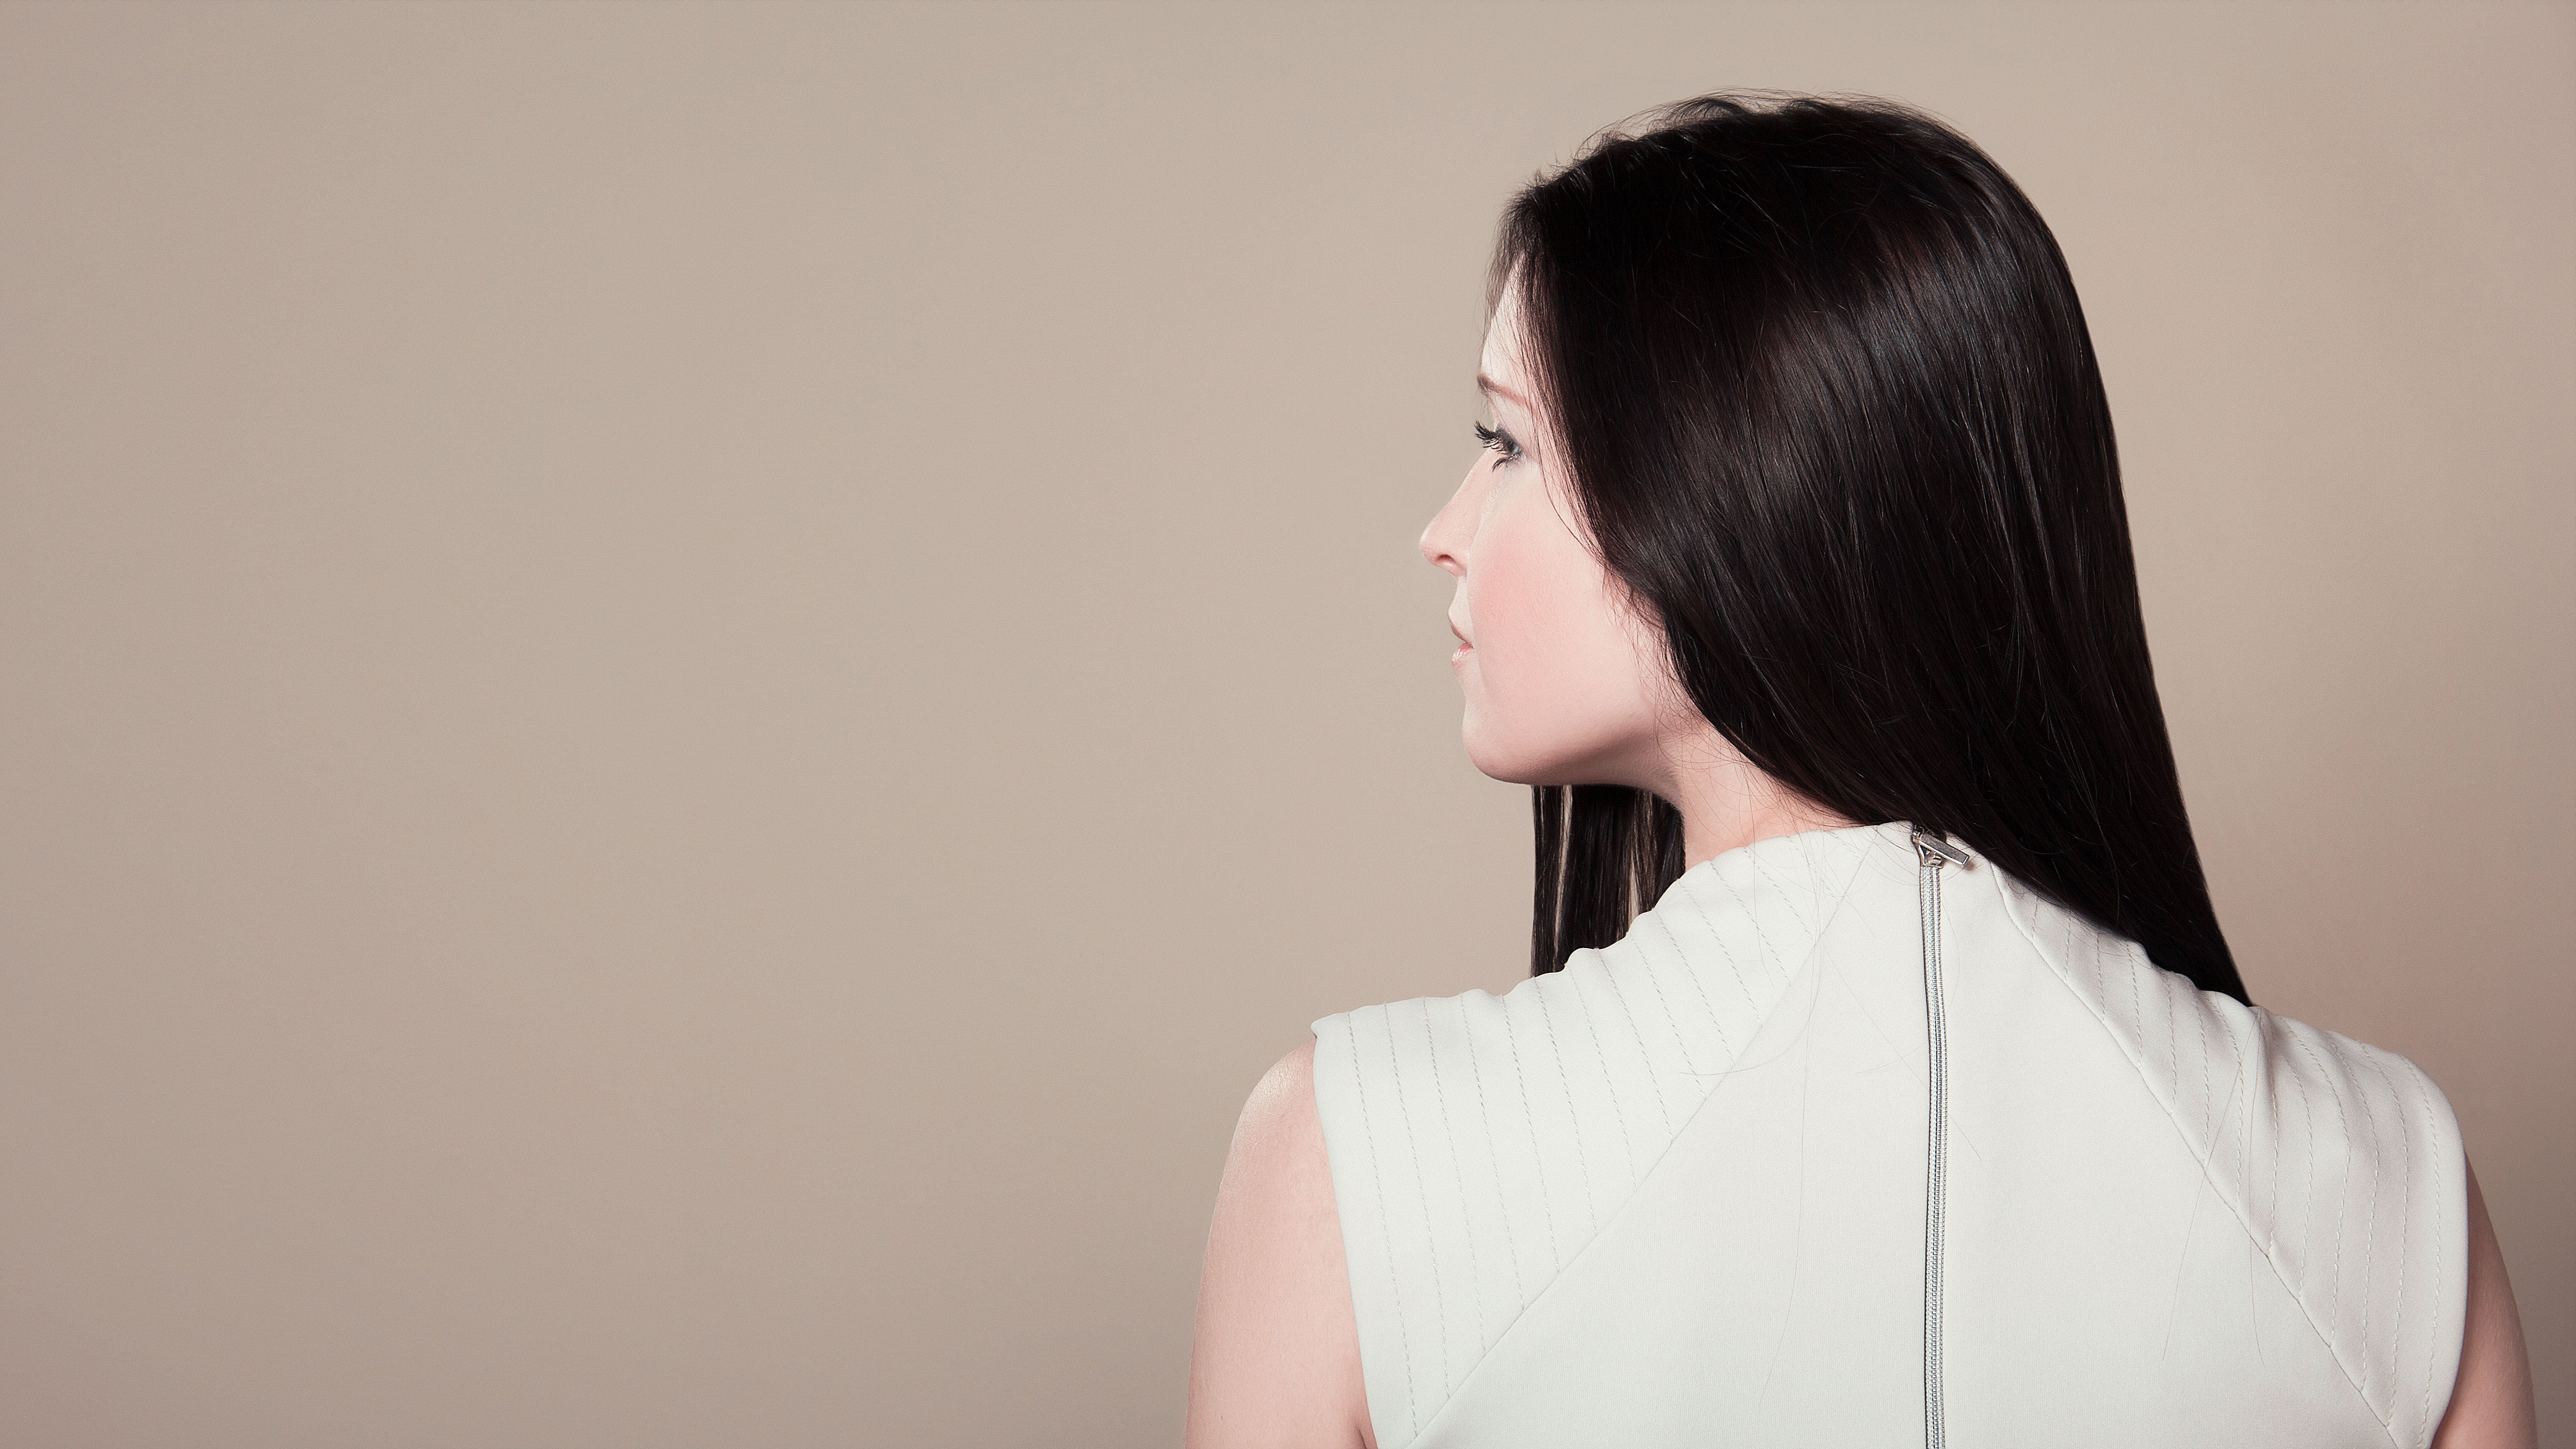 Woman in White Sleeveless High Neck Top Showing Her Back